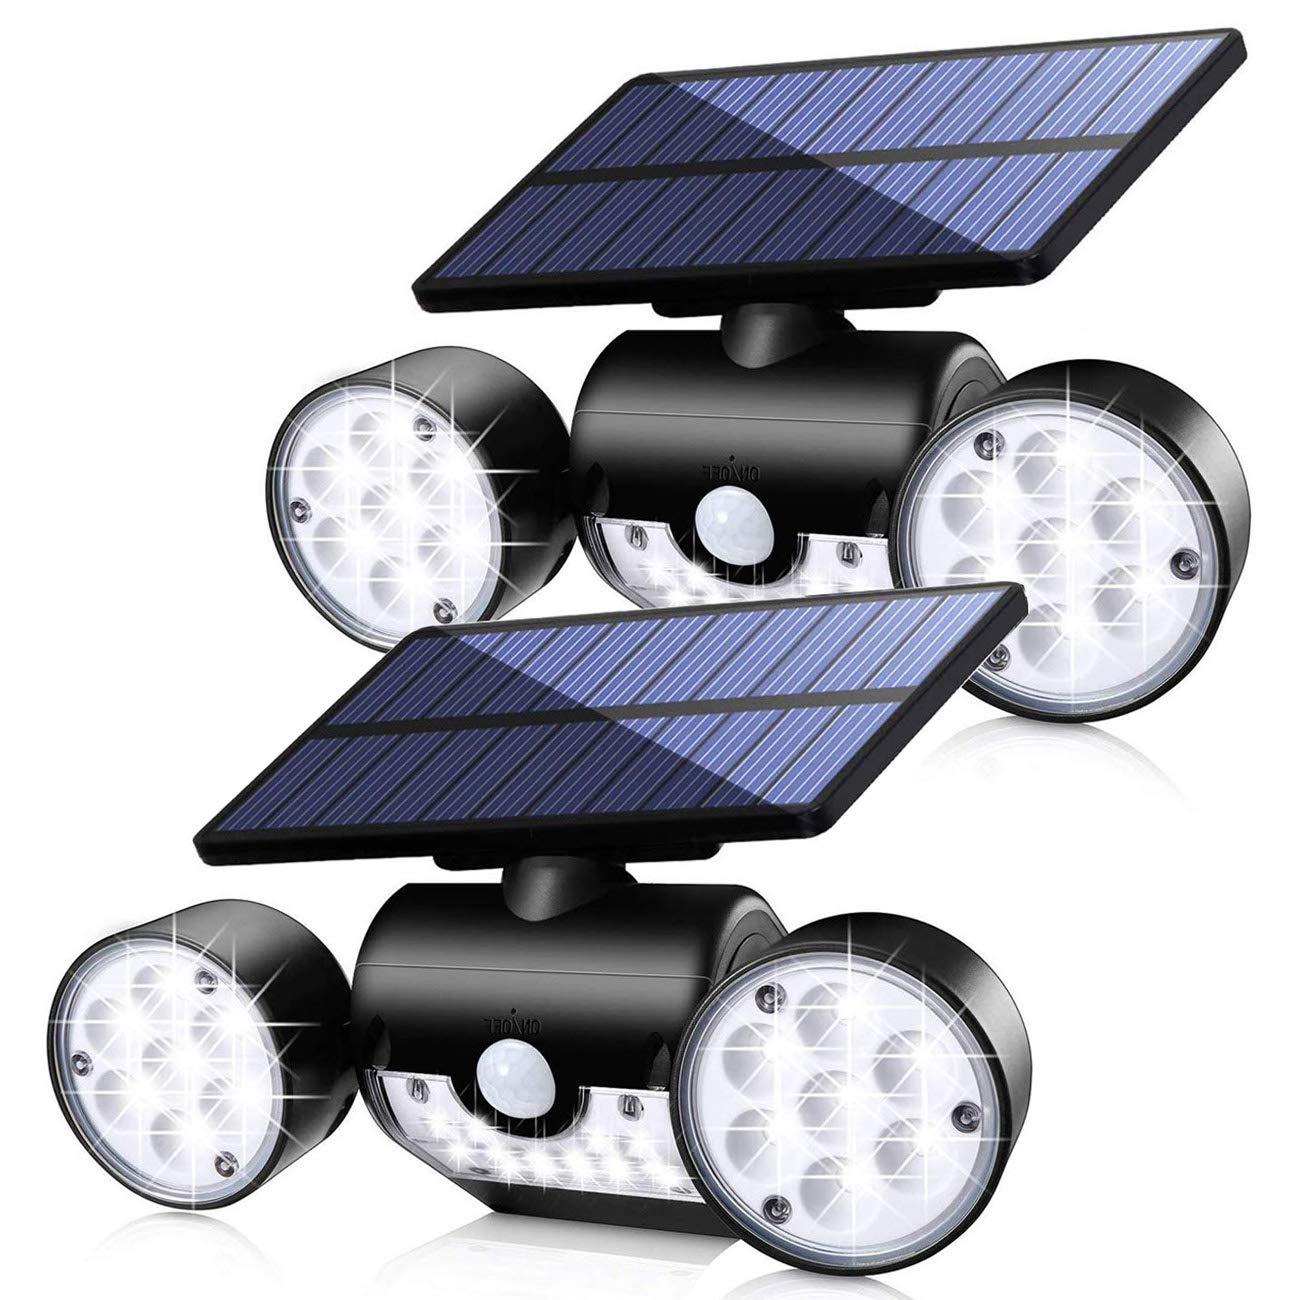 Fatpoom Solar Lights Outdoor with Motion Sensor, Solar Powered Wall Lights with Dual Head Spotlights 30 LED Waterproof 360° Adjustable Rotatable Solar Motion Security Lights Outdoor for Garden 2Pack by Fatpoom